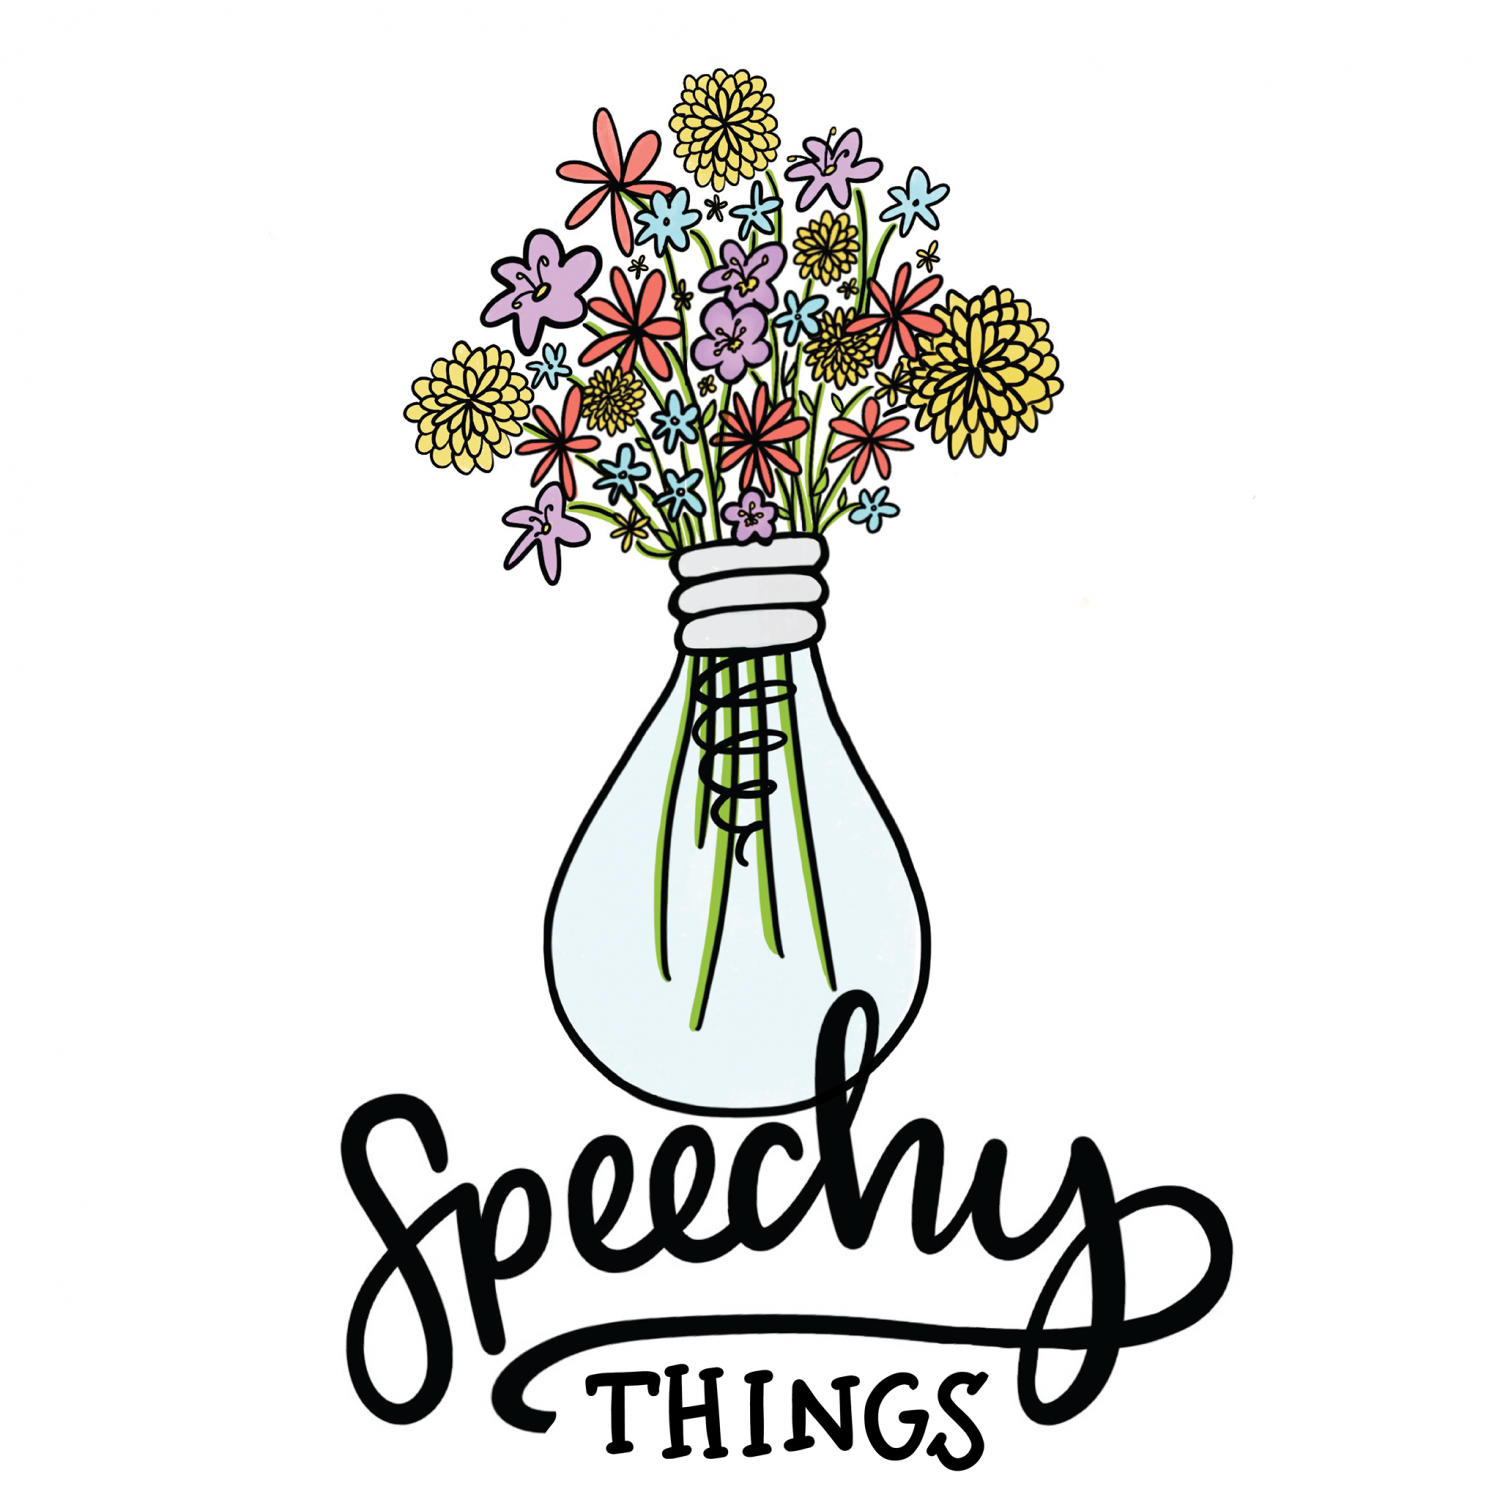 cropped-speechythings-logo-1-1.png